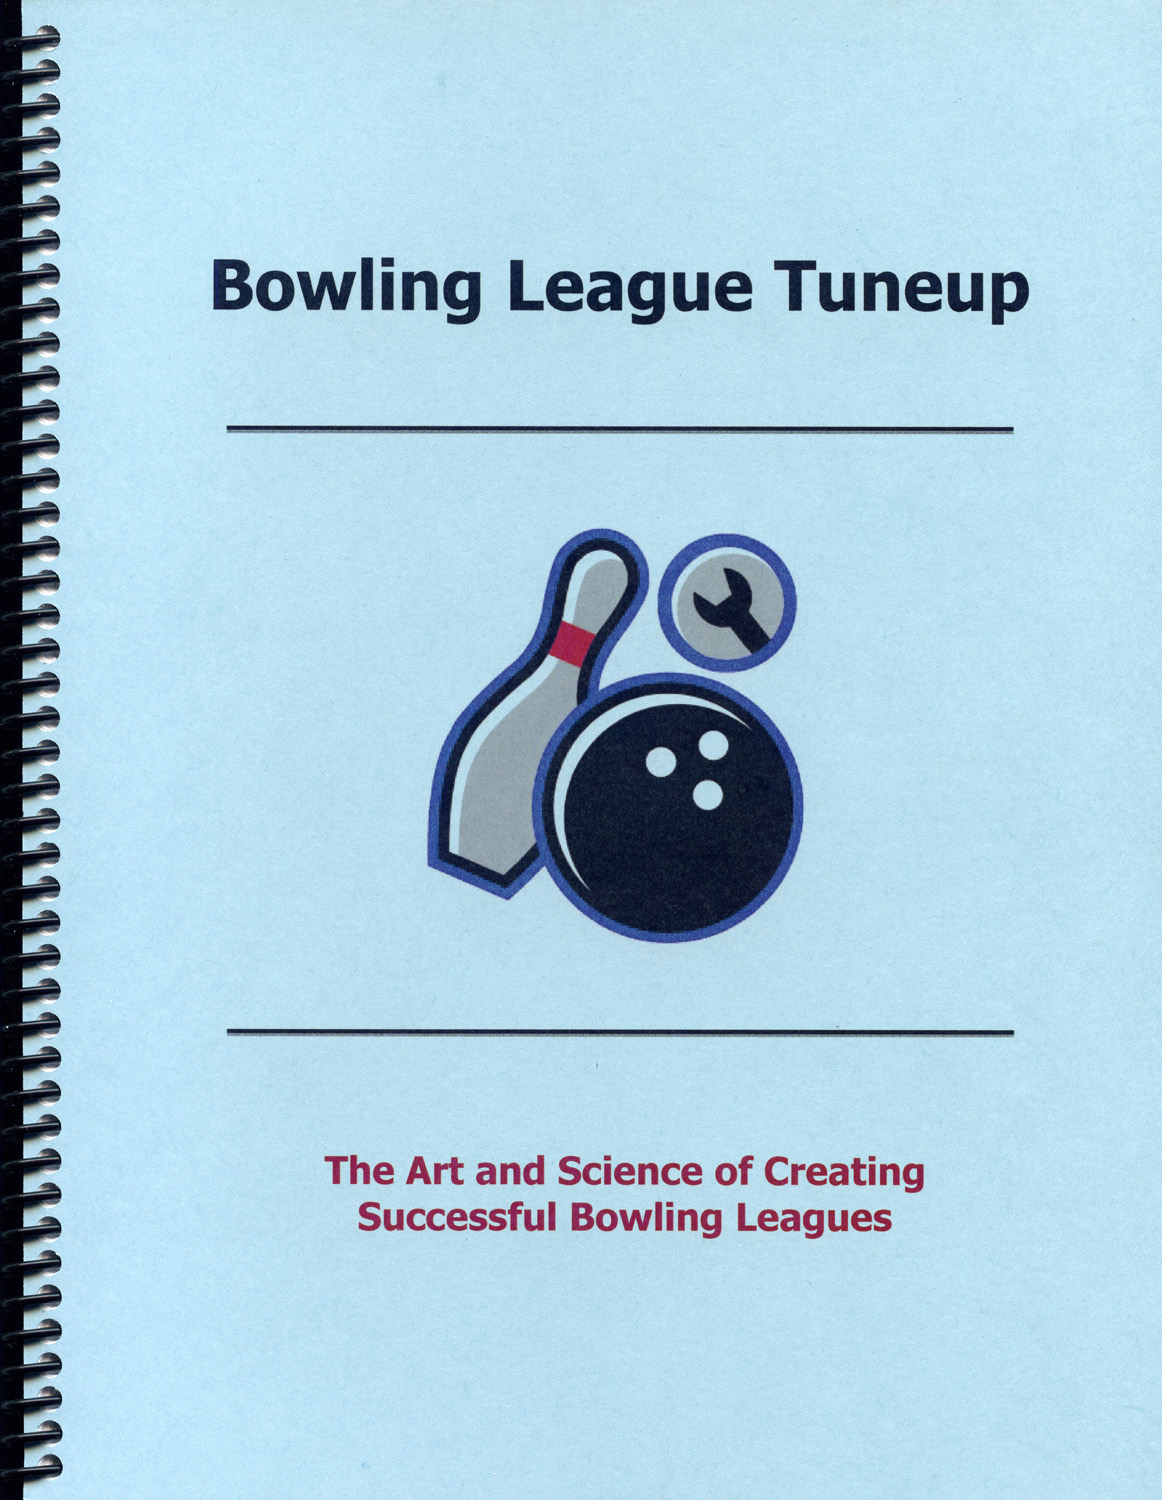 Click the manual to bring up the fullBowling League Tuneup manual in your brower'sPDF viewer.